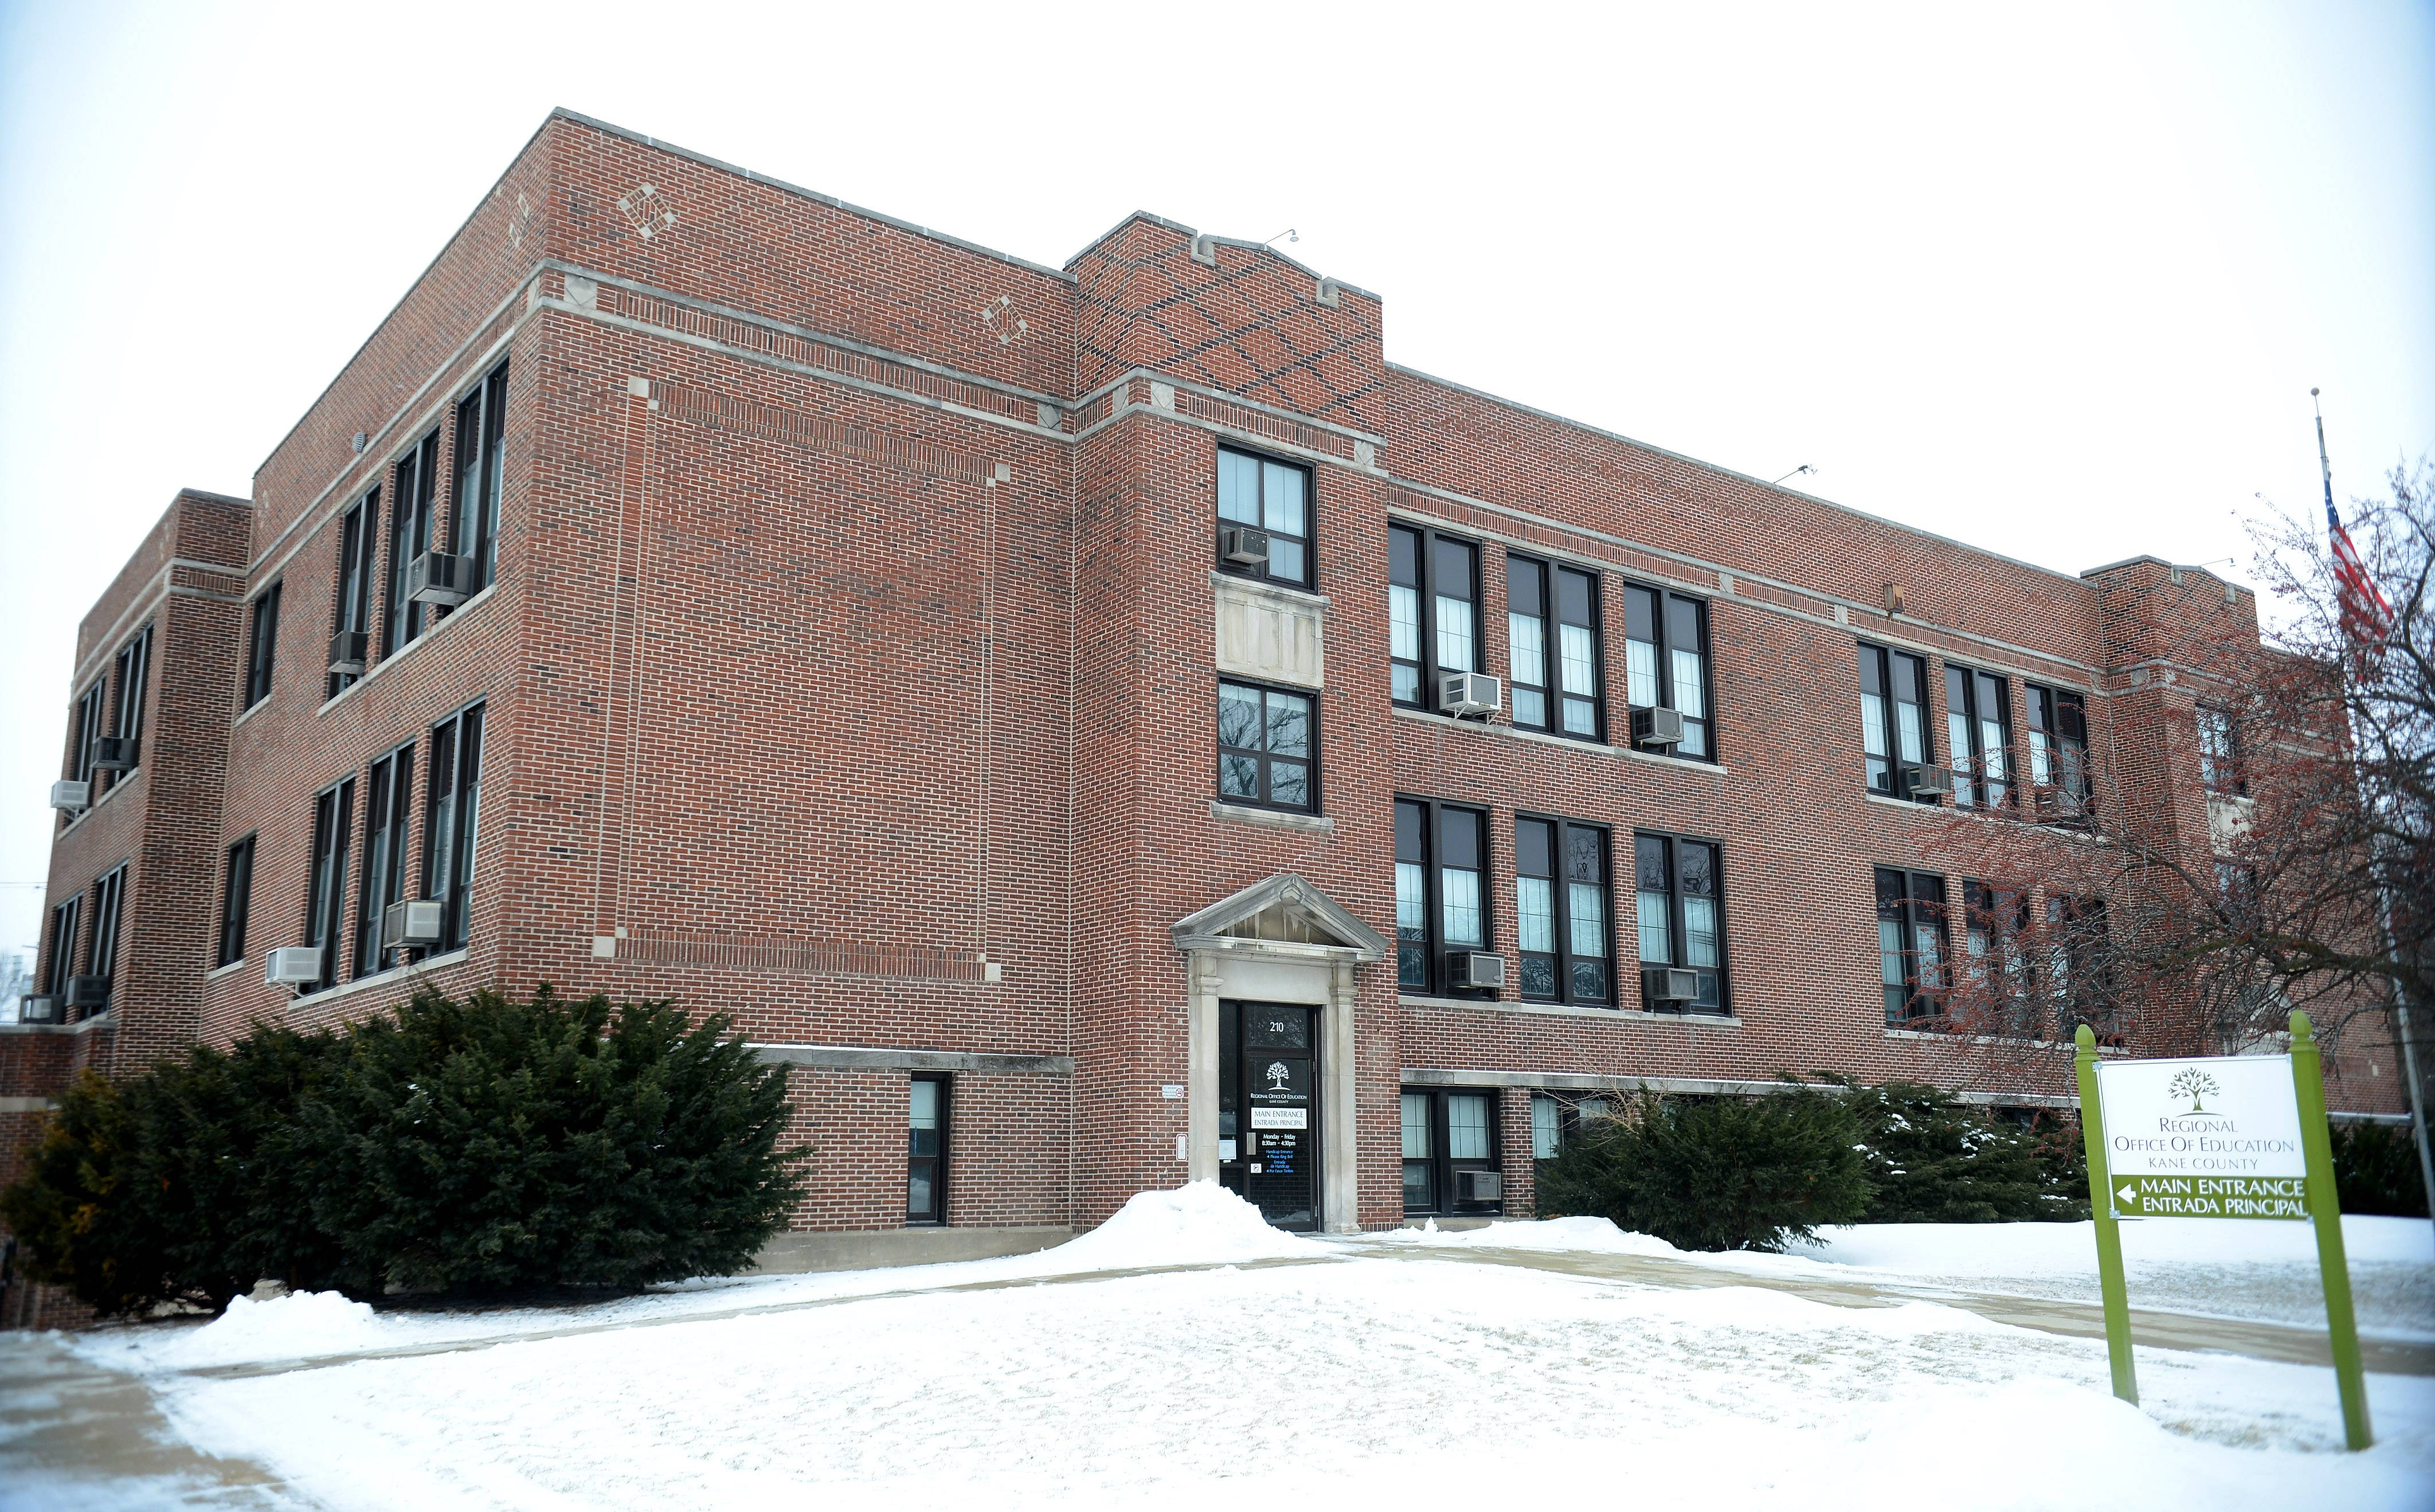 The Geneva Library board voted Thursday to buy the former Sixth Street School from Kane County. It intends to raze the building and consider it for a new library.